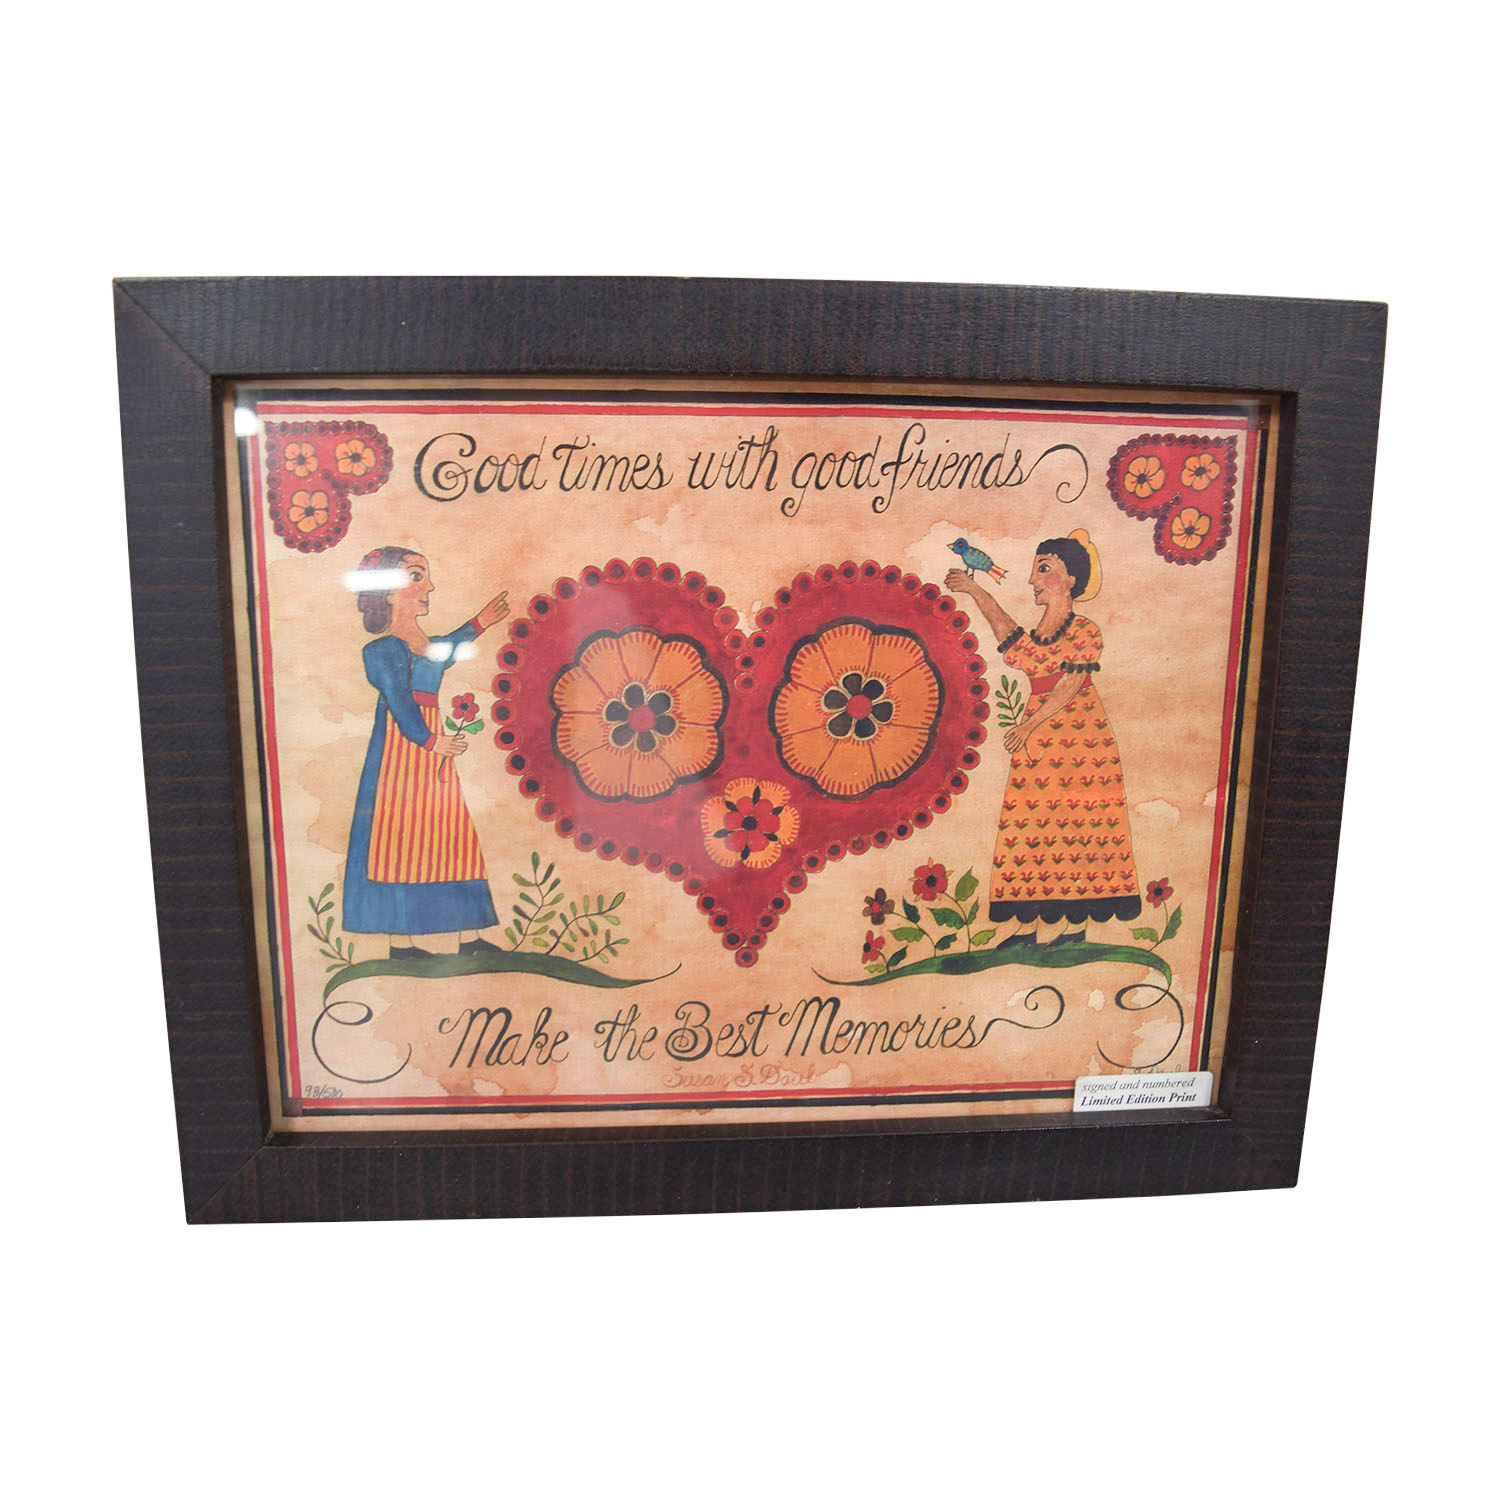 Signed Heart Friends Framed Print on sale